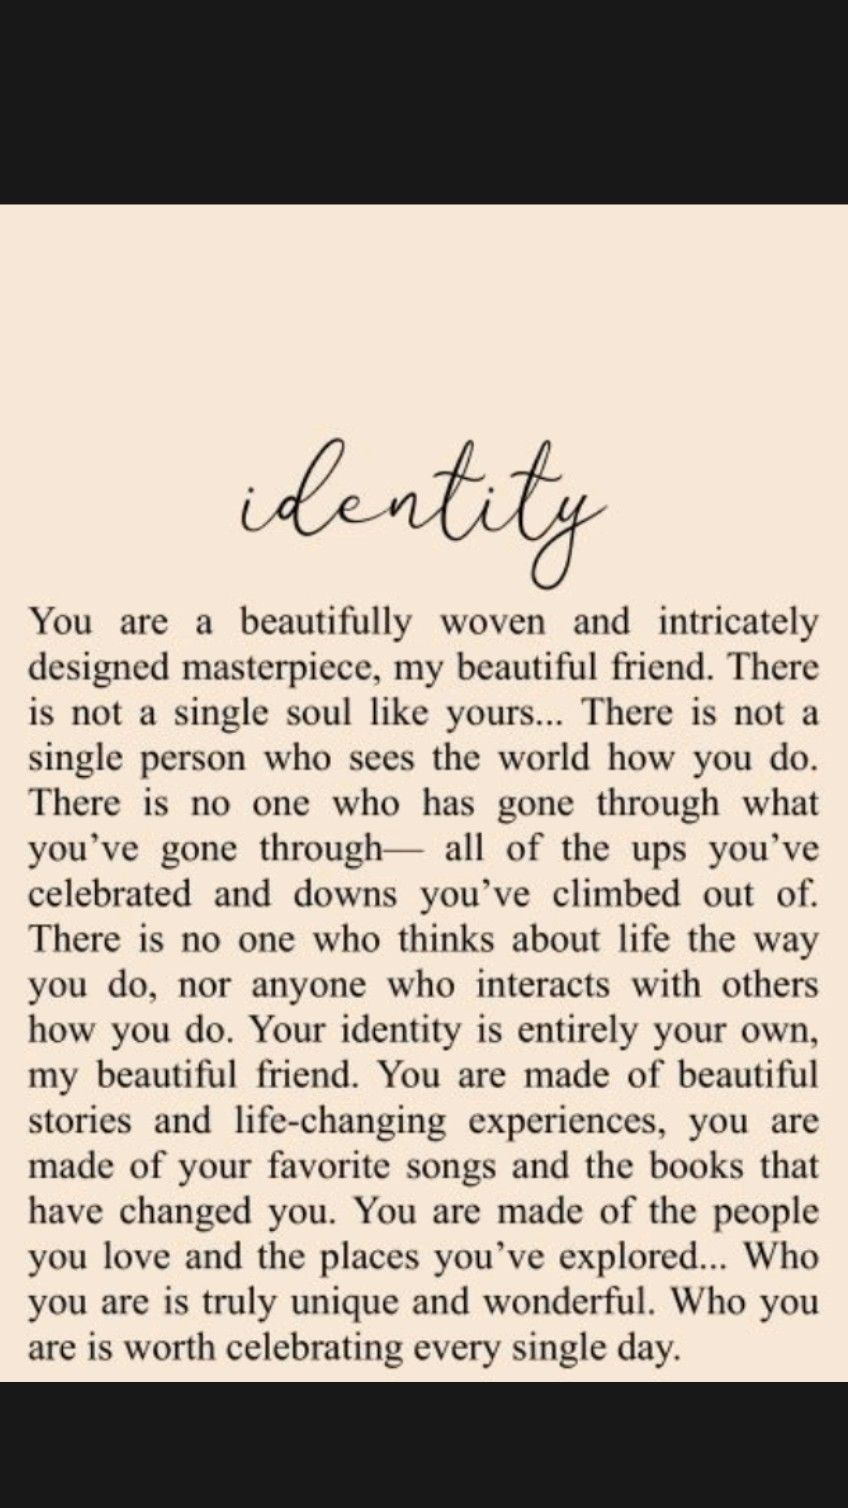 Selflove is a must. know who you are.💙